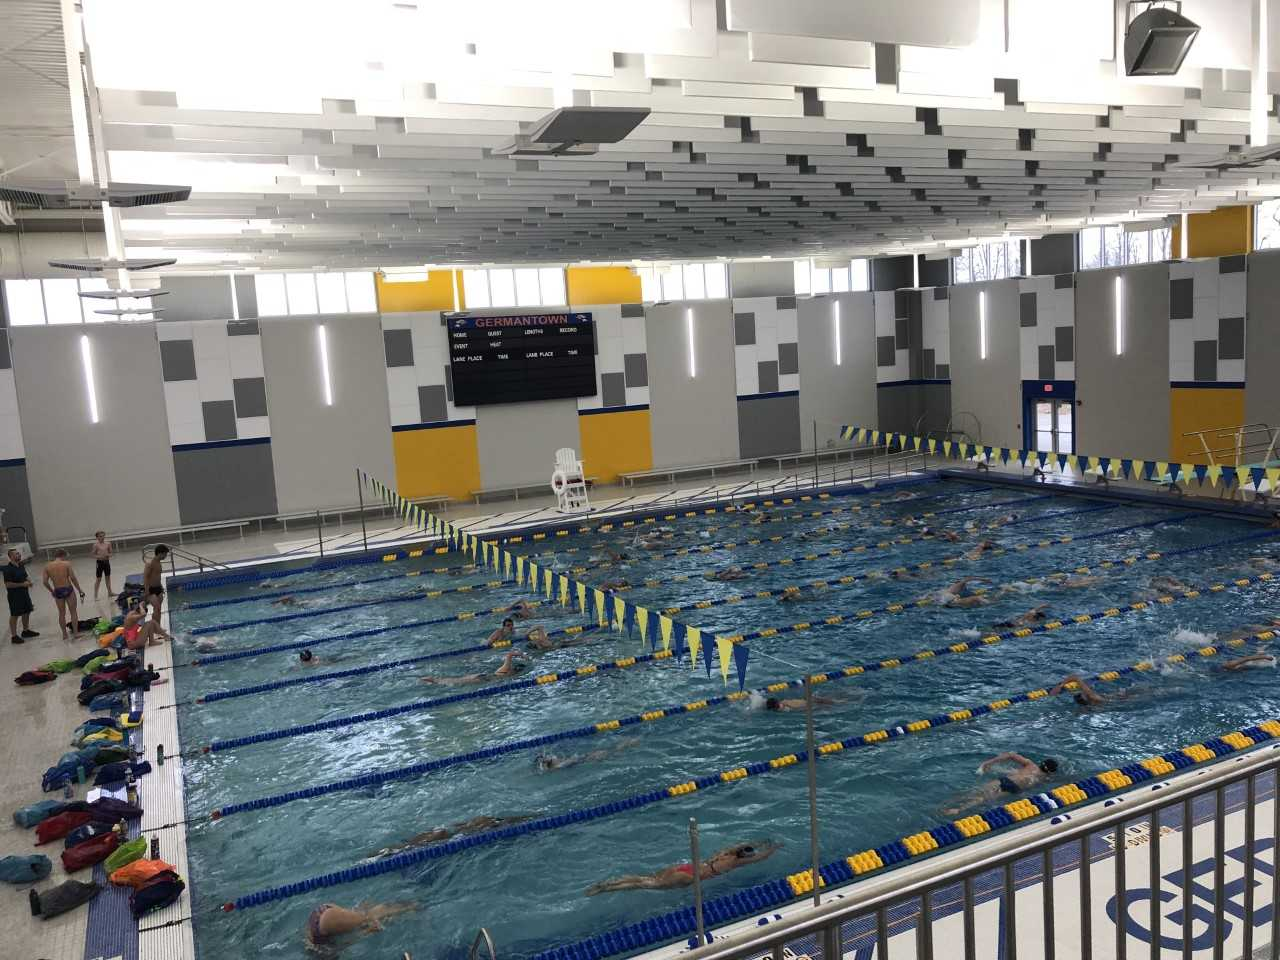 d27dde4b-9c26-4771-b9ae-3bbbb6251e98-Germantown_High_School_Pool